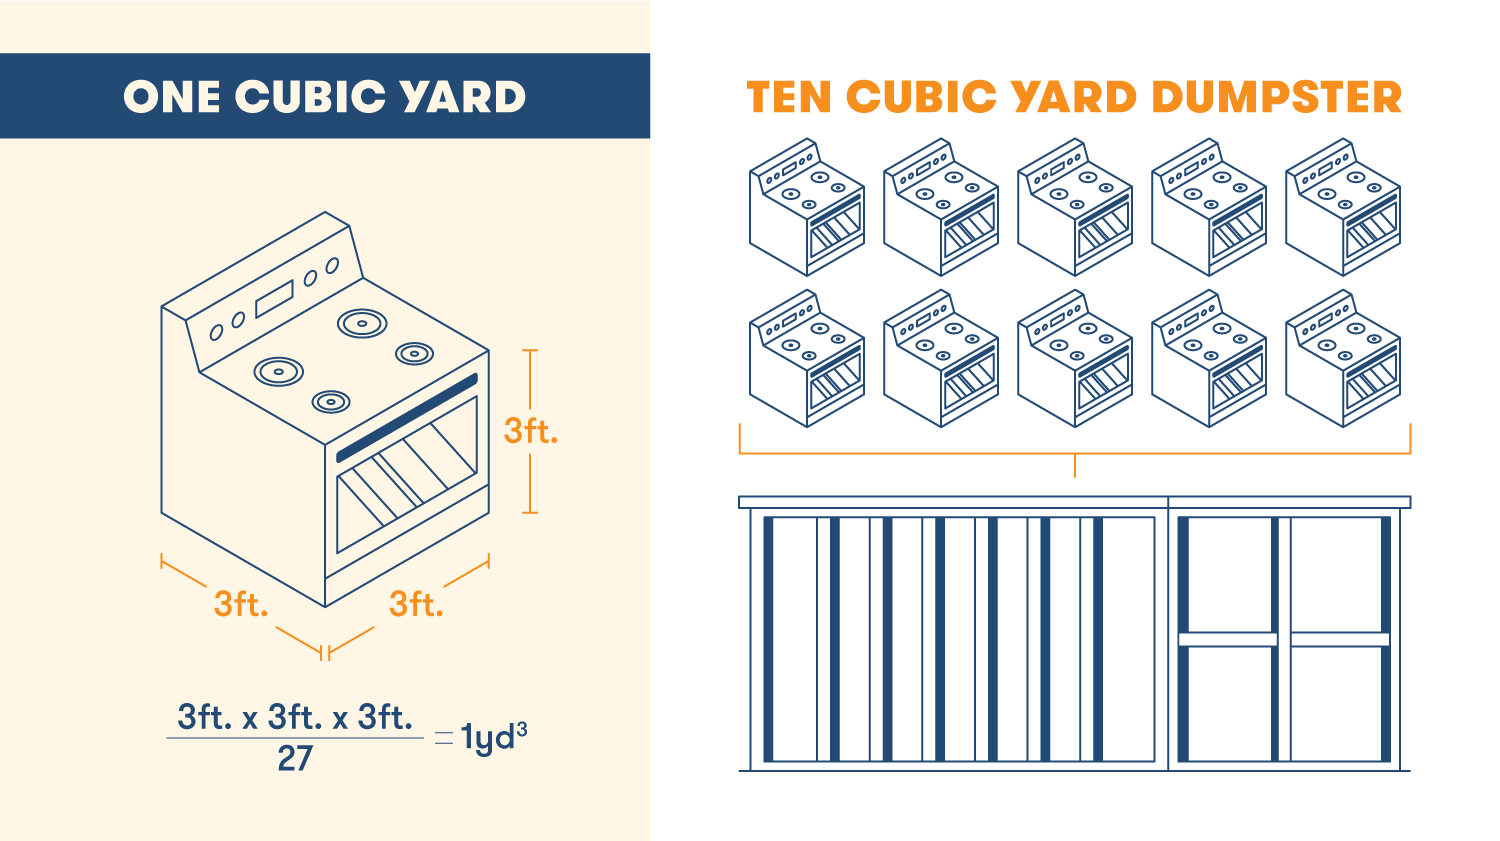 The size of a dumpster is measured in cubic feet, while its volume is measured in yards. A 10 yard dumpster has 10 cubic yards of storage..